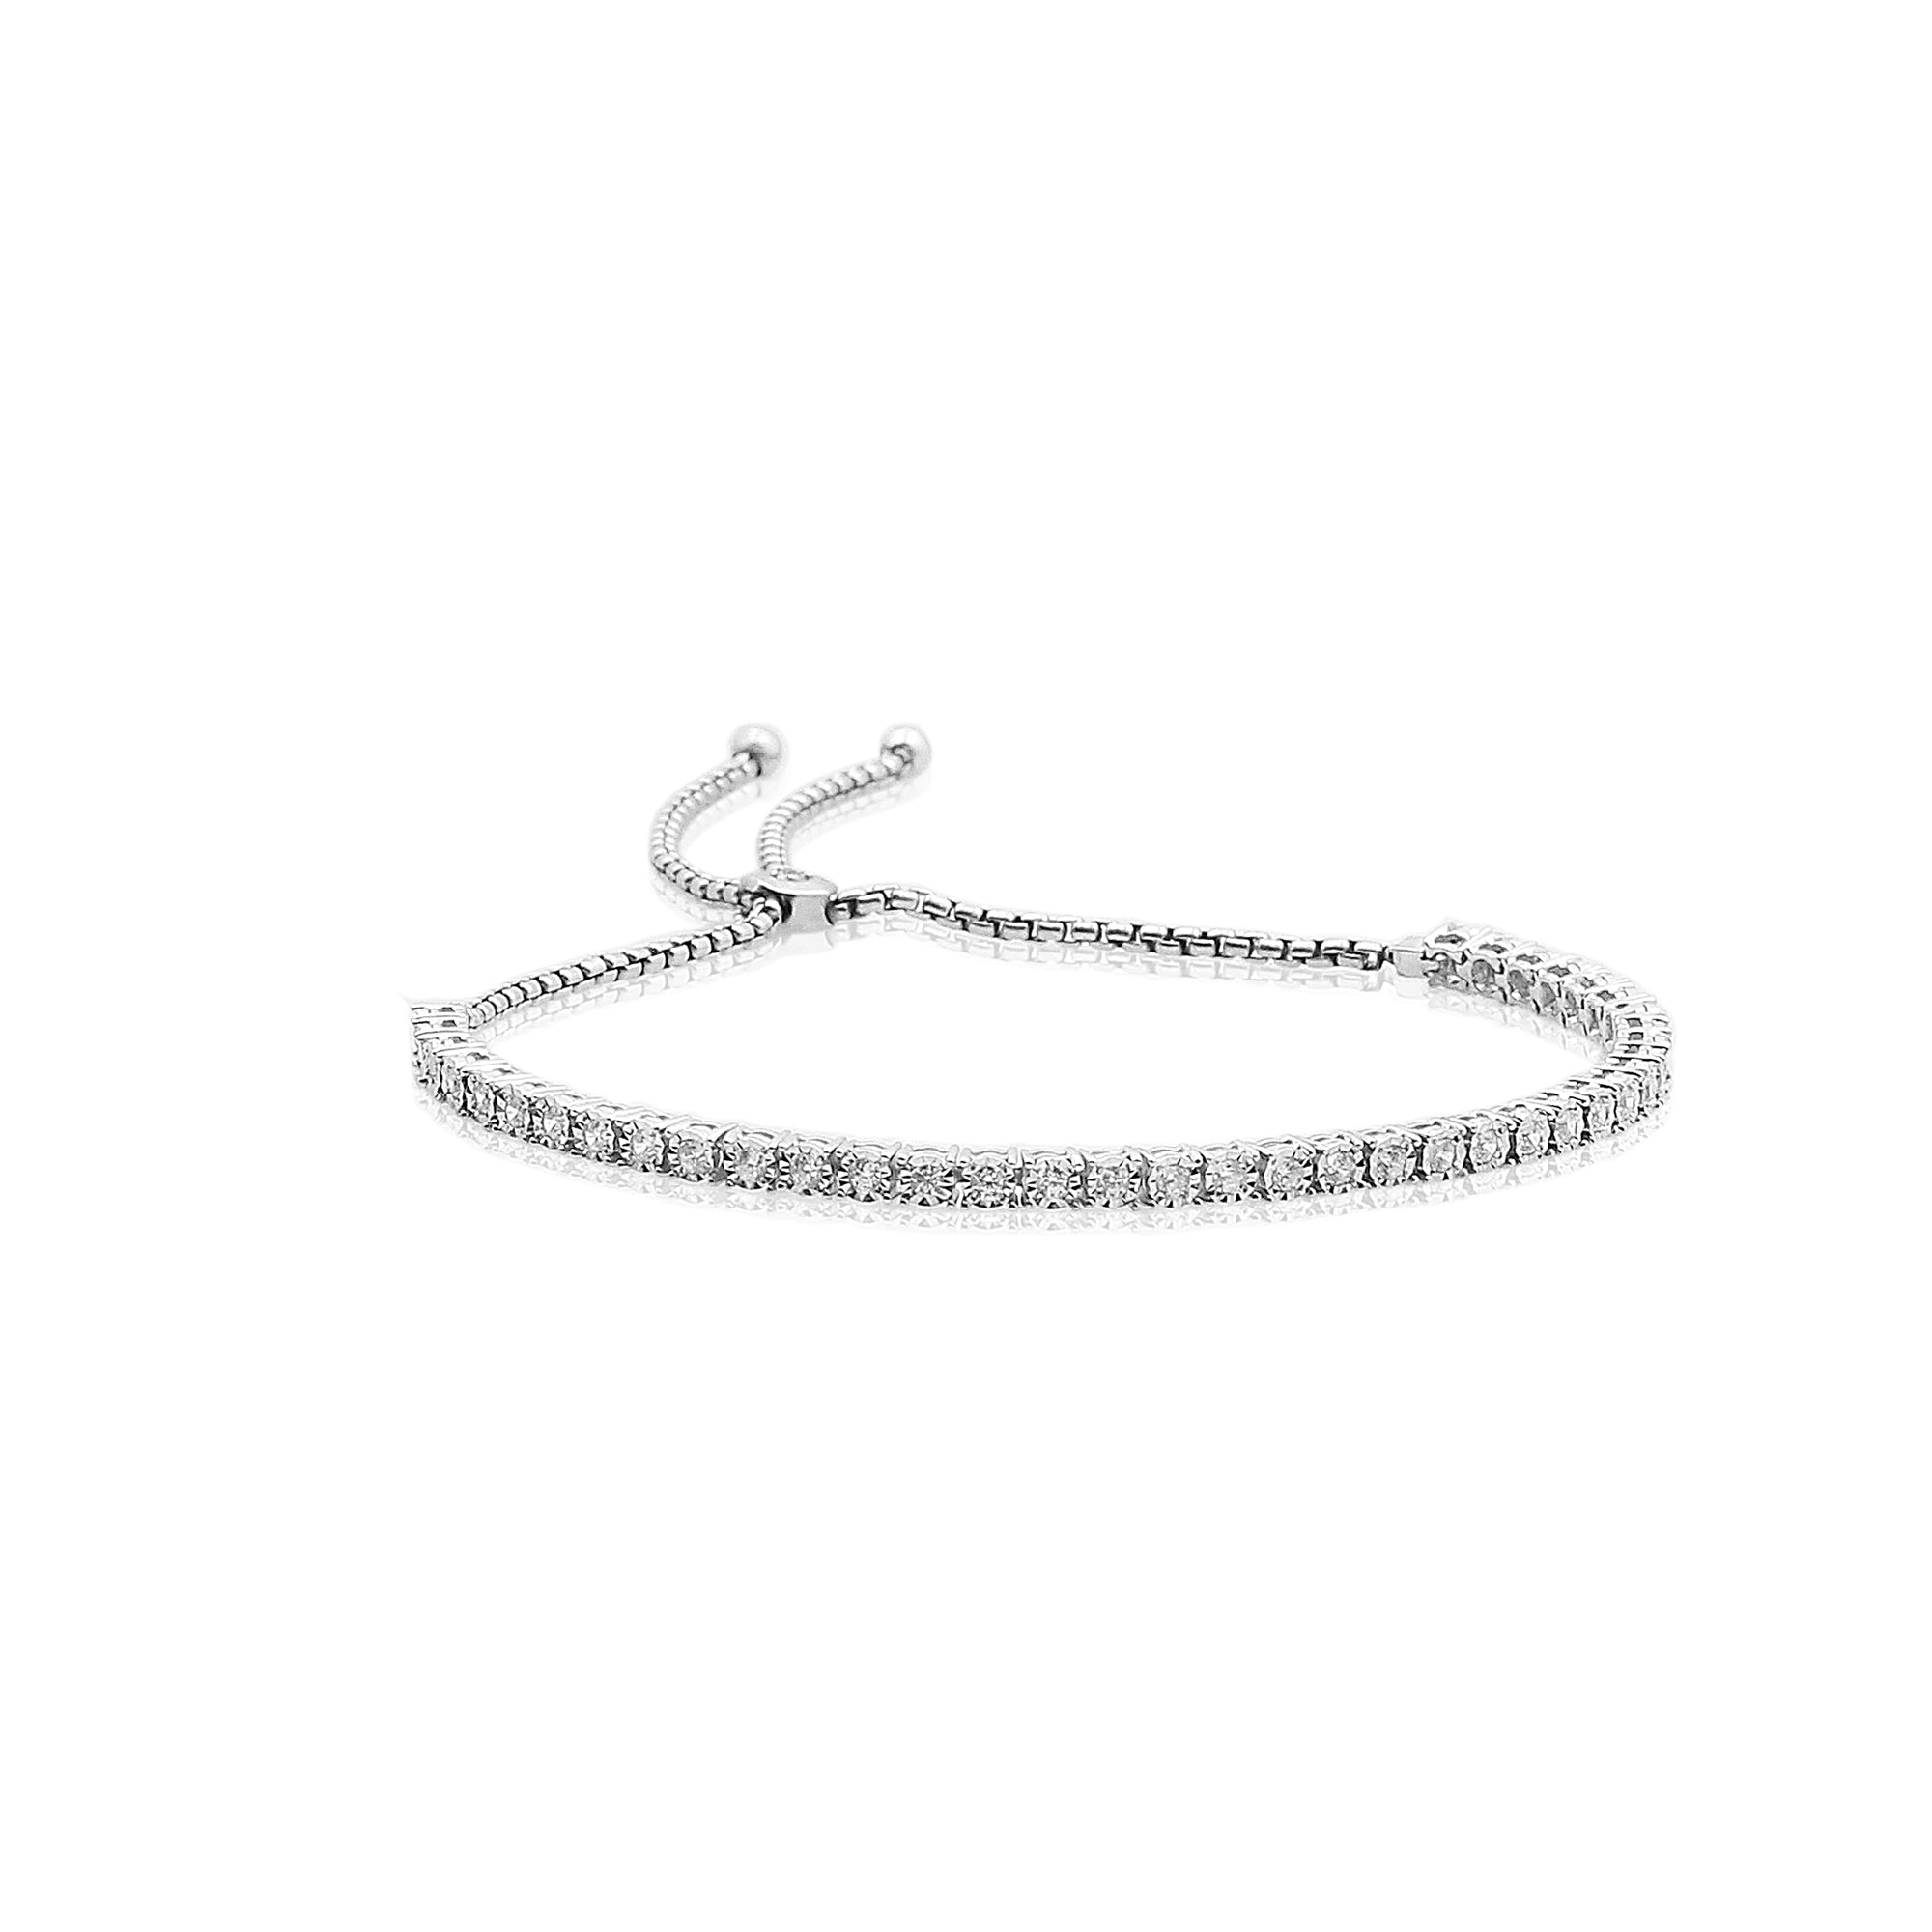 bracelets tennis bracelet diamond been the for jewelry eravos long best to select can have around how as we blog remember